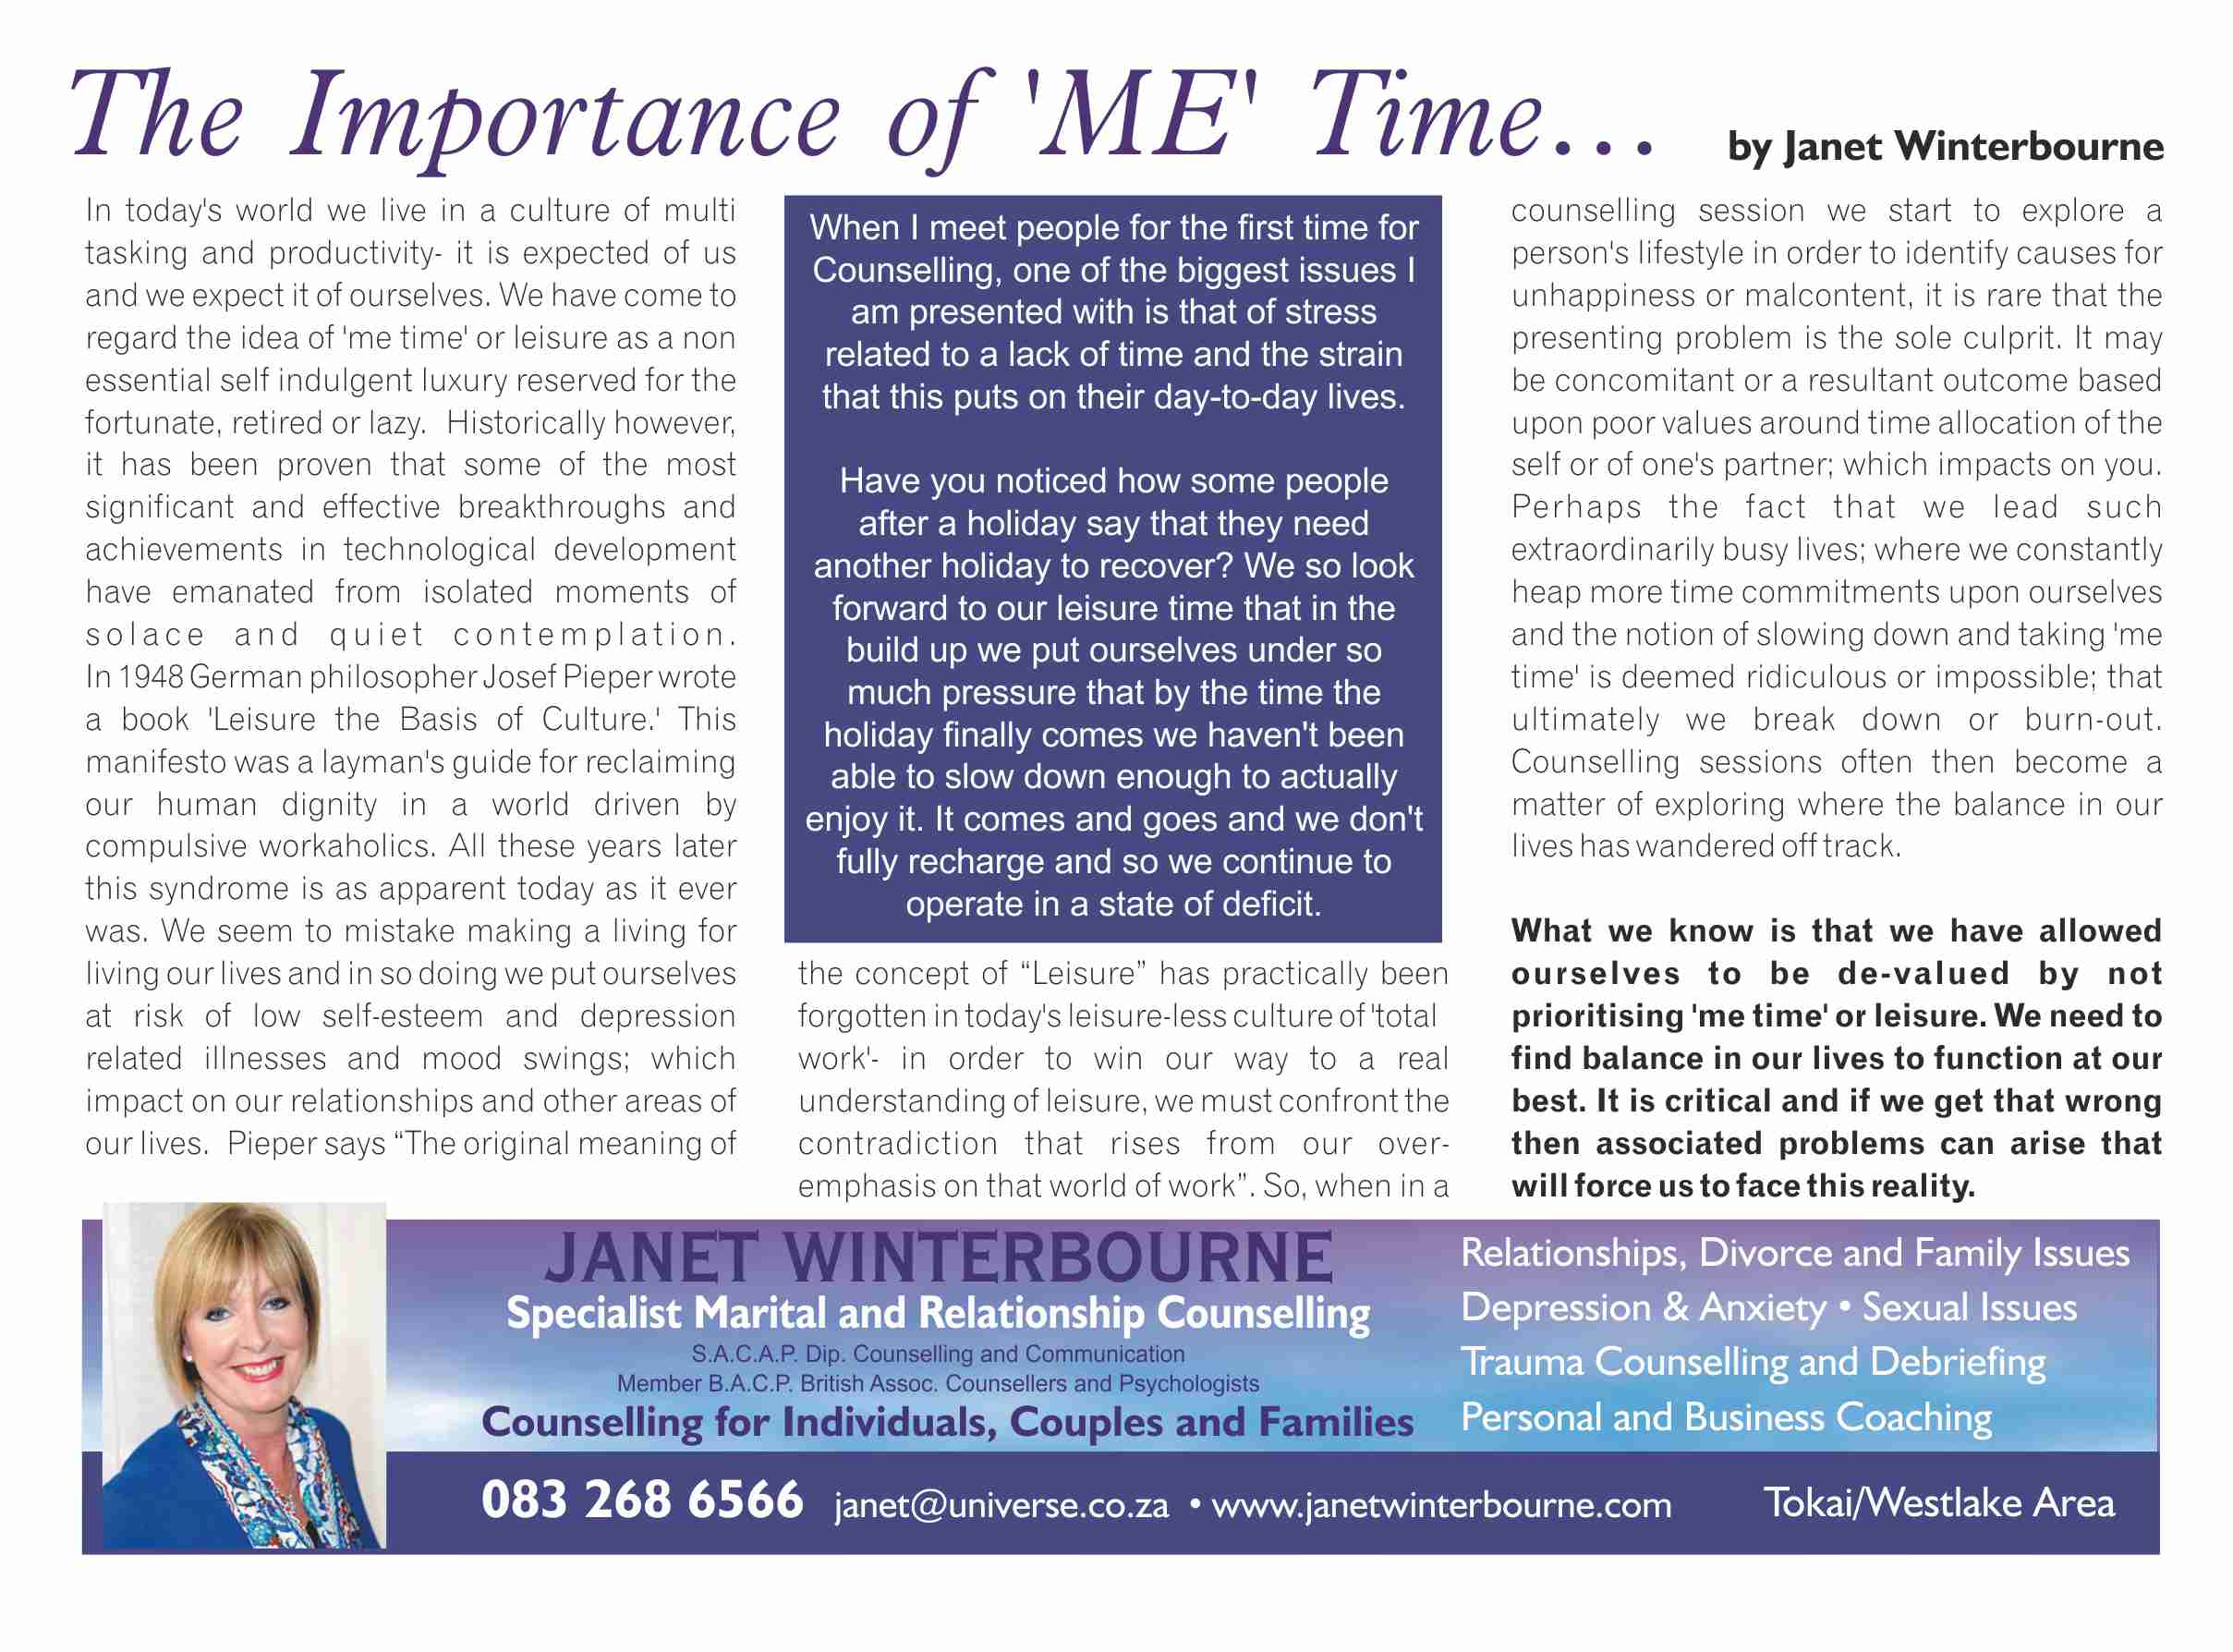 The Importance of 'me' time | Psychologist Cape Town